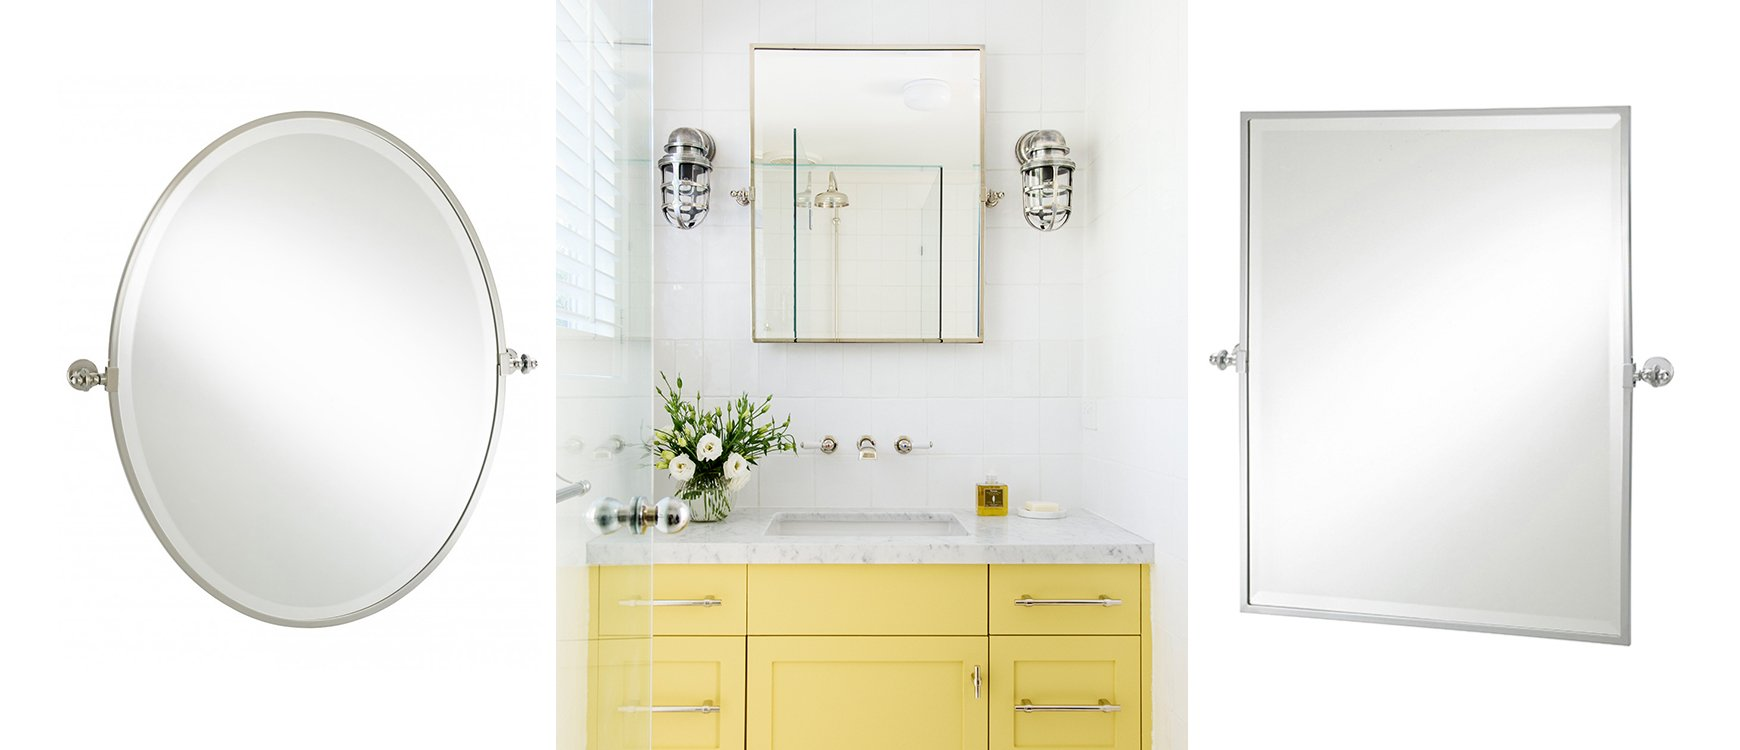 Journal of bathroom design and kitchen renovation ideas for your ...